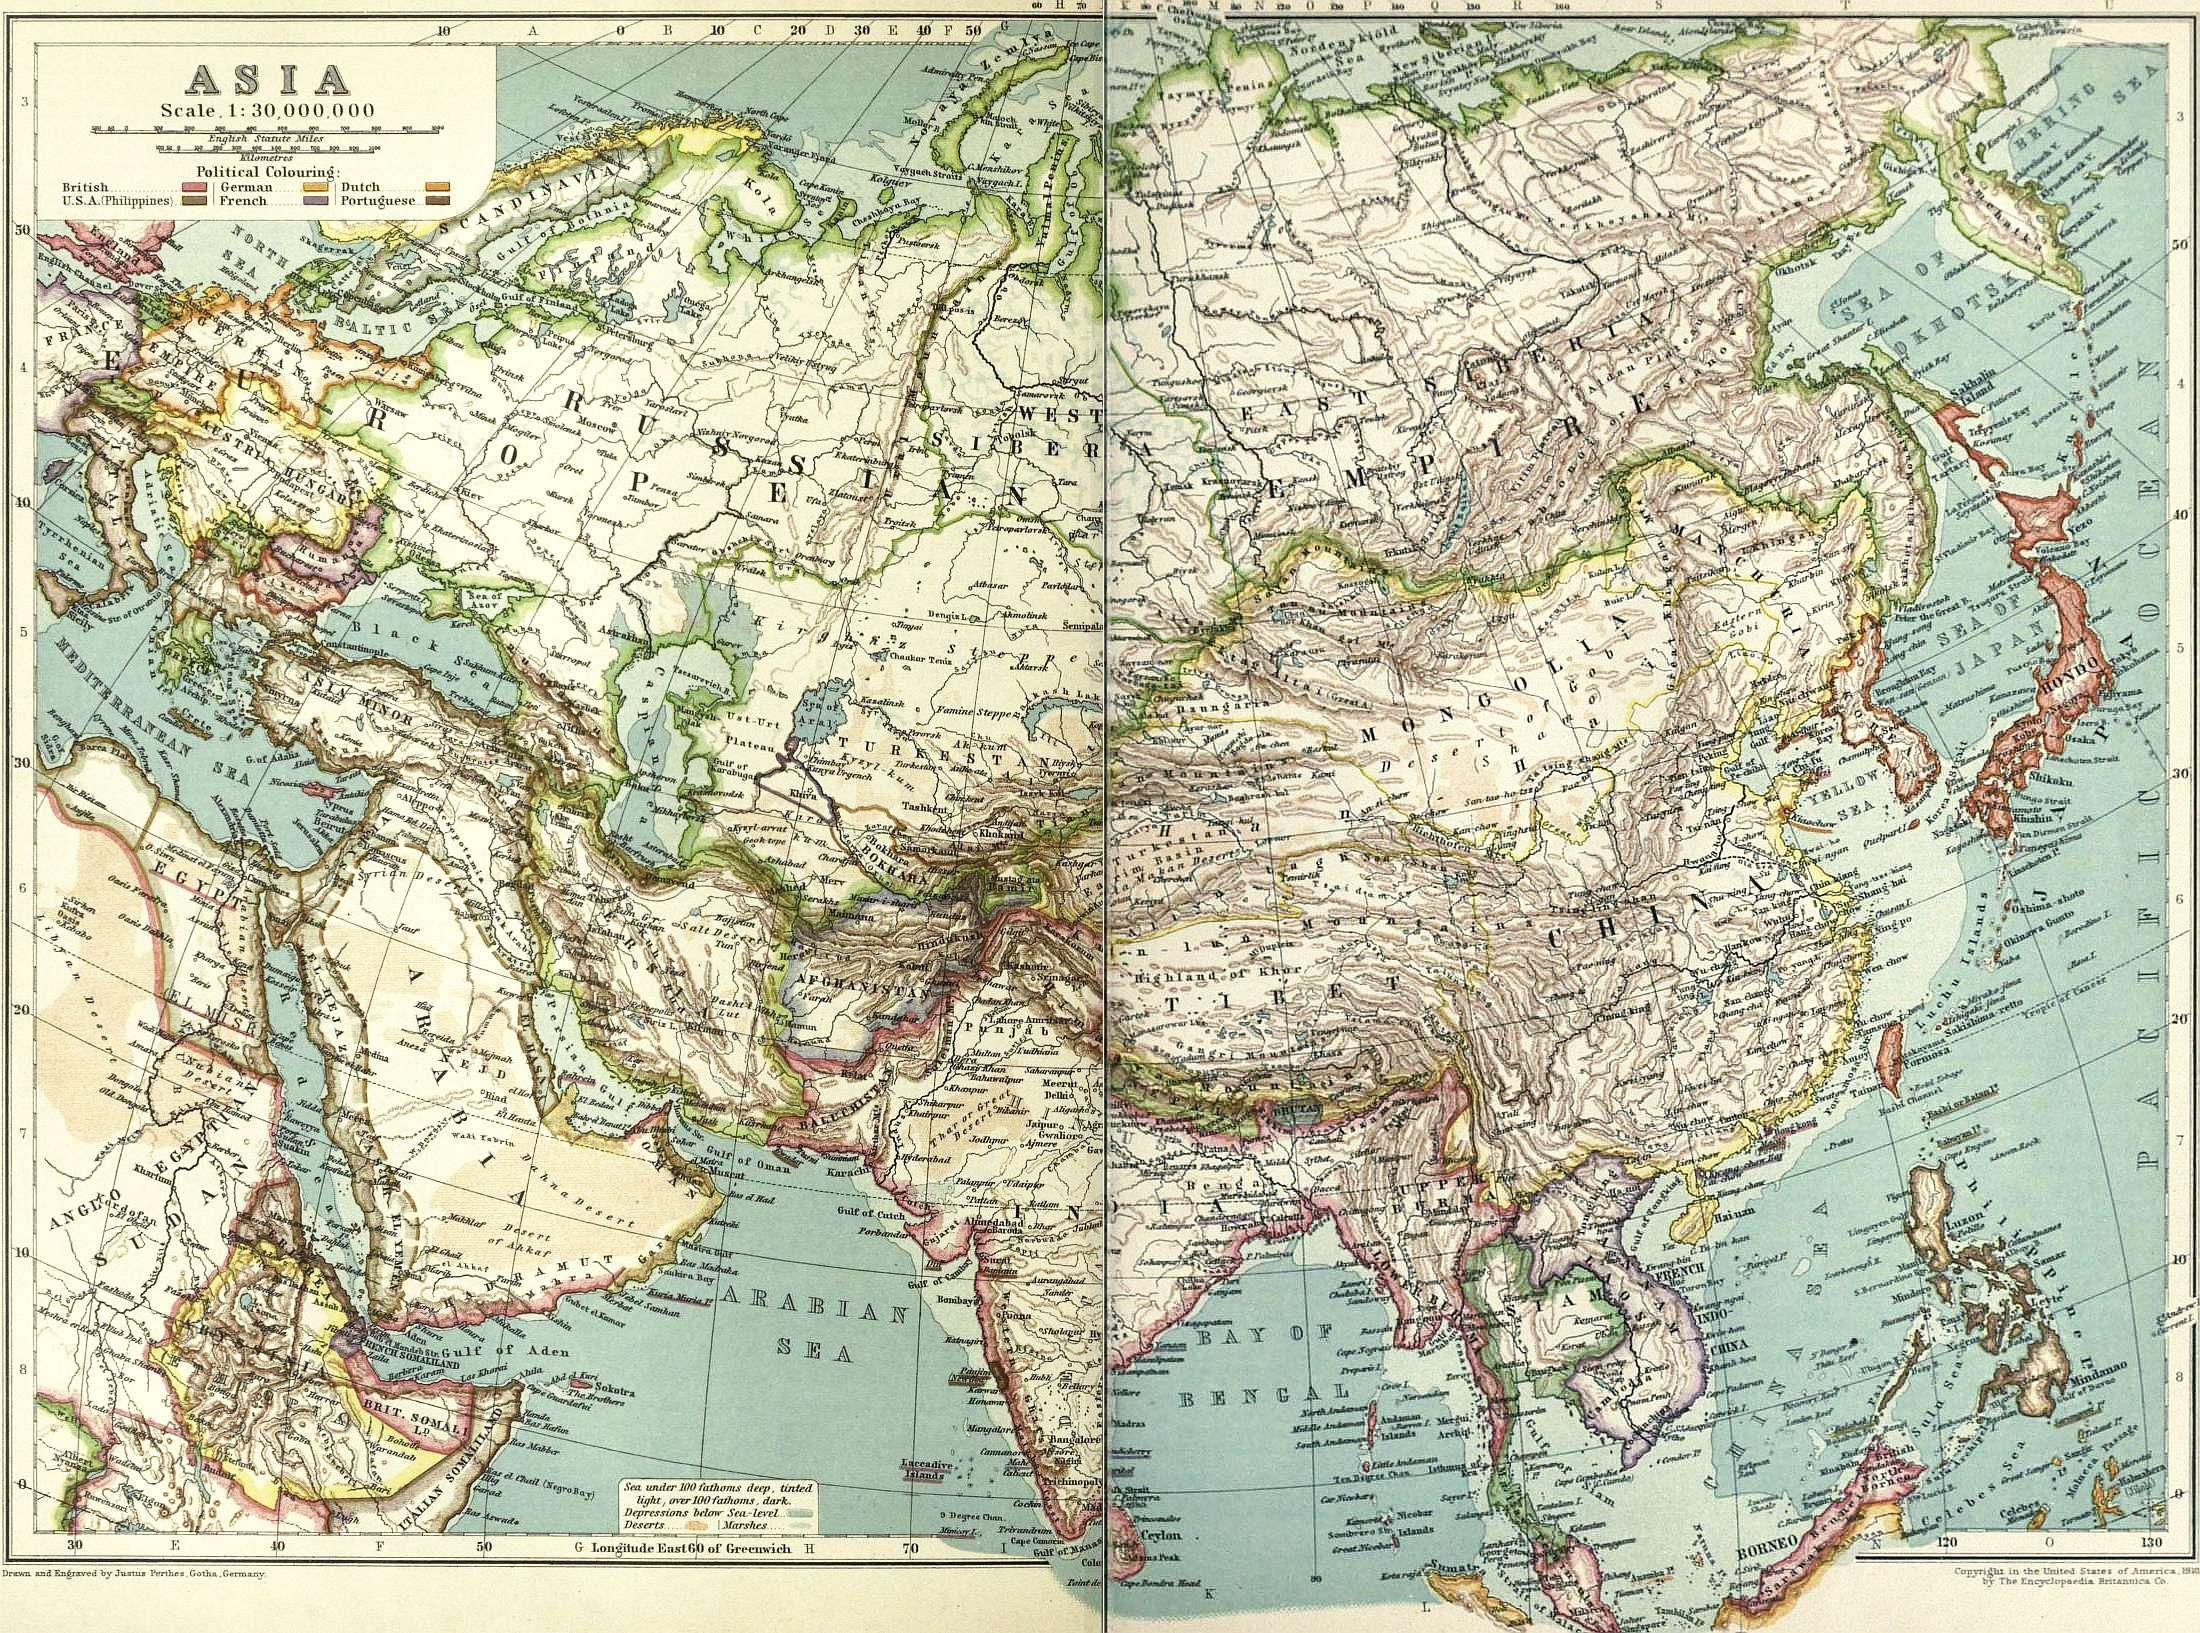 wonderful full color vintage asia map from 1910 check out the old names and political affiliations of the countries great geography for home schoolers